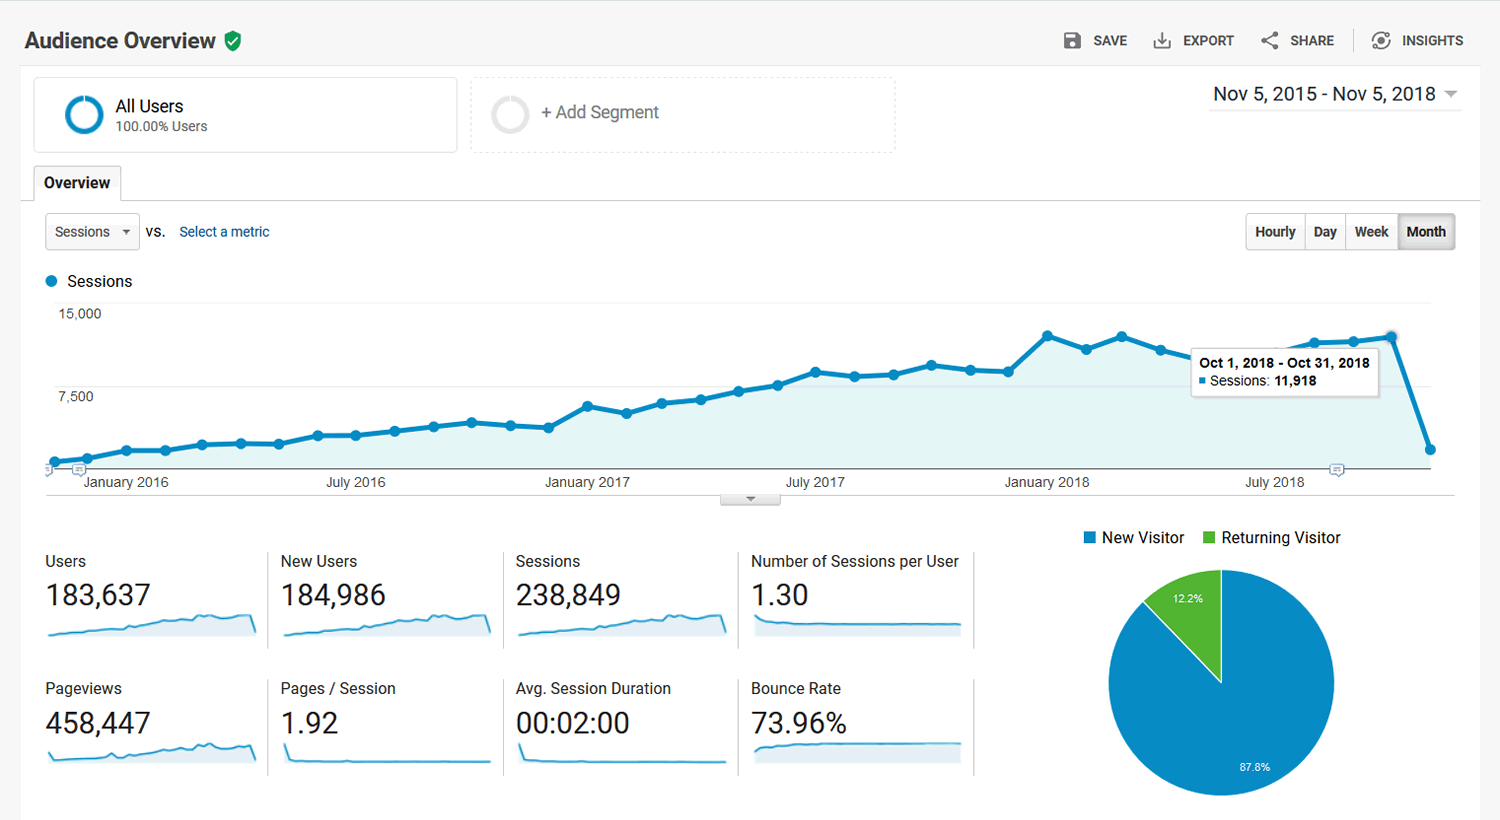 Google Analytics - Audience Overview - 2015-11-05 thru 2018-11-05